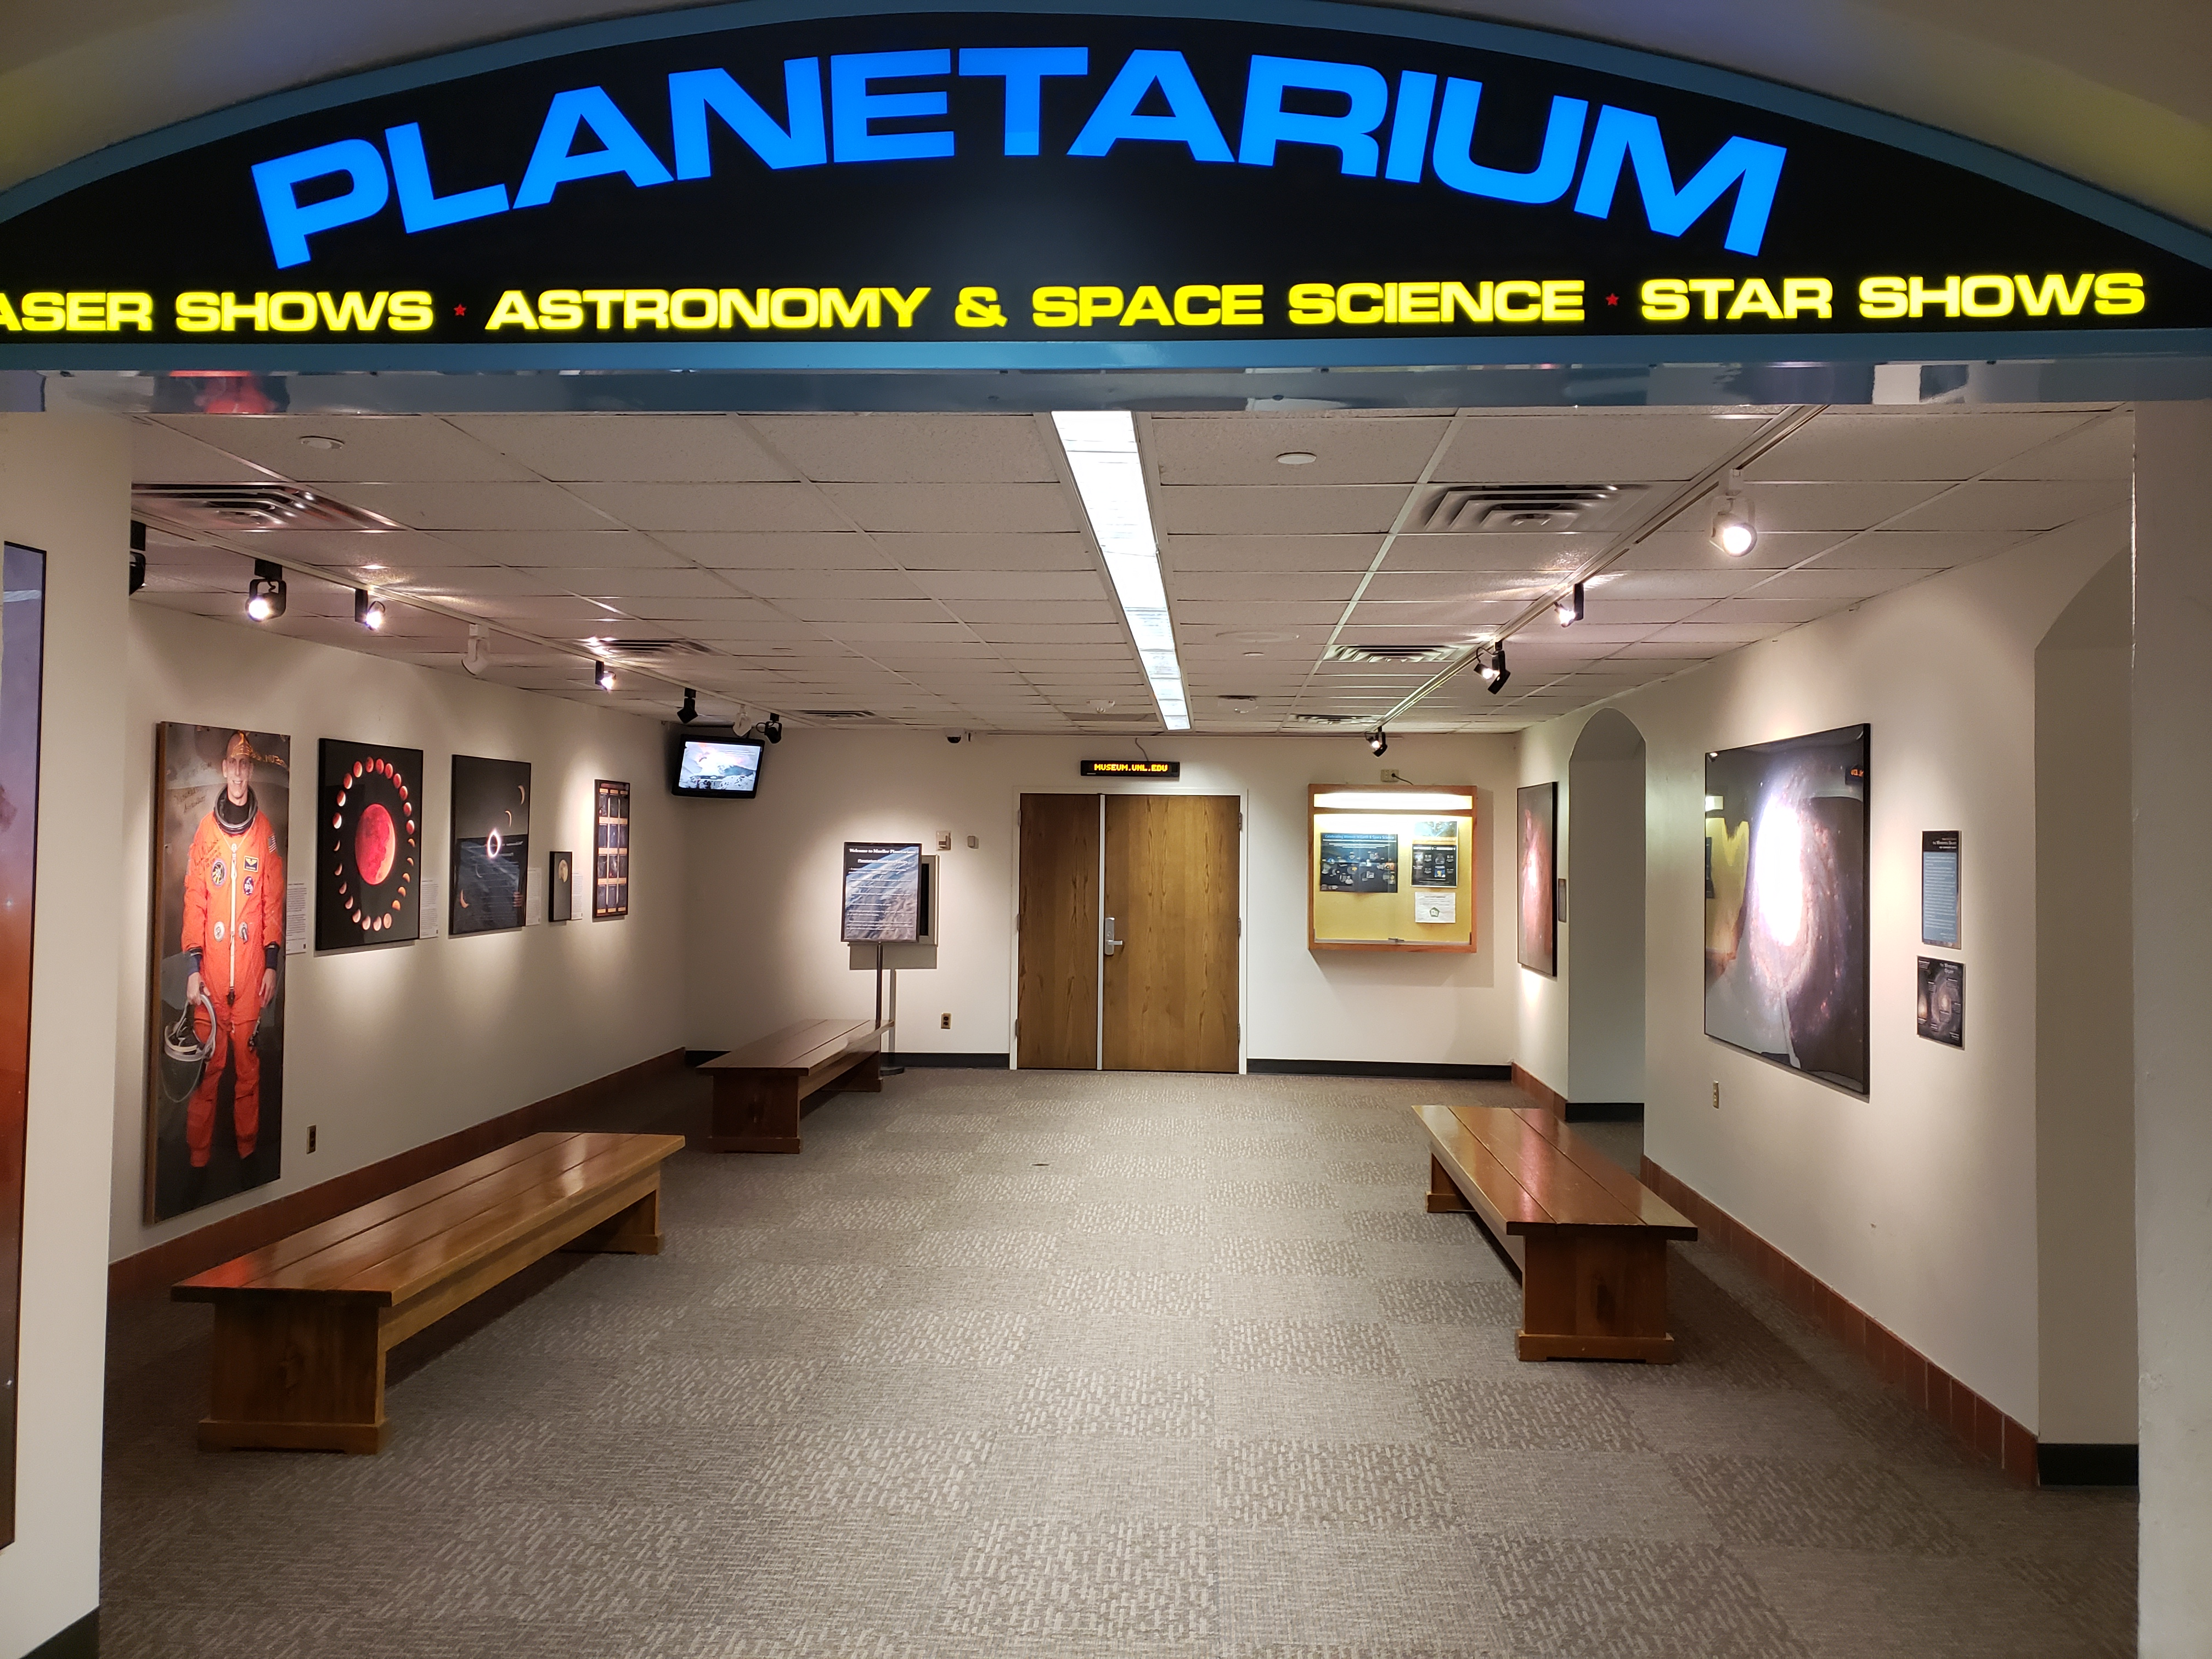 Planetarium lobby today